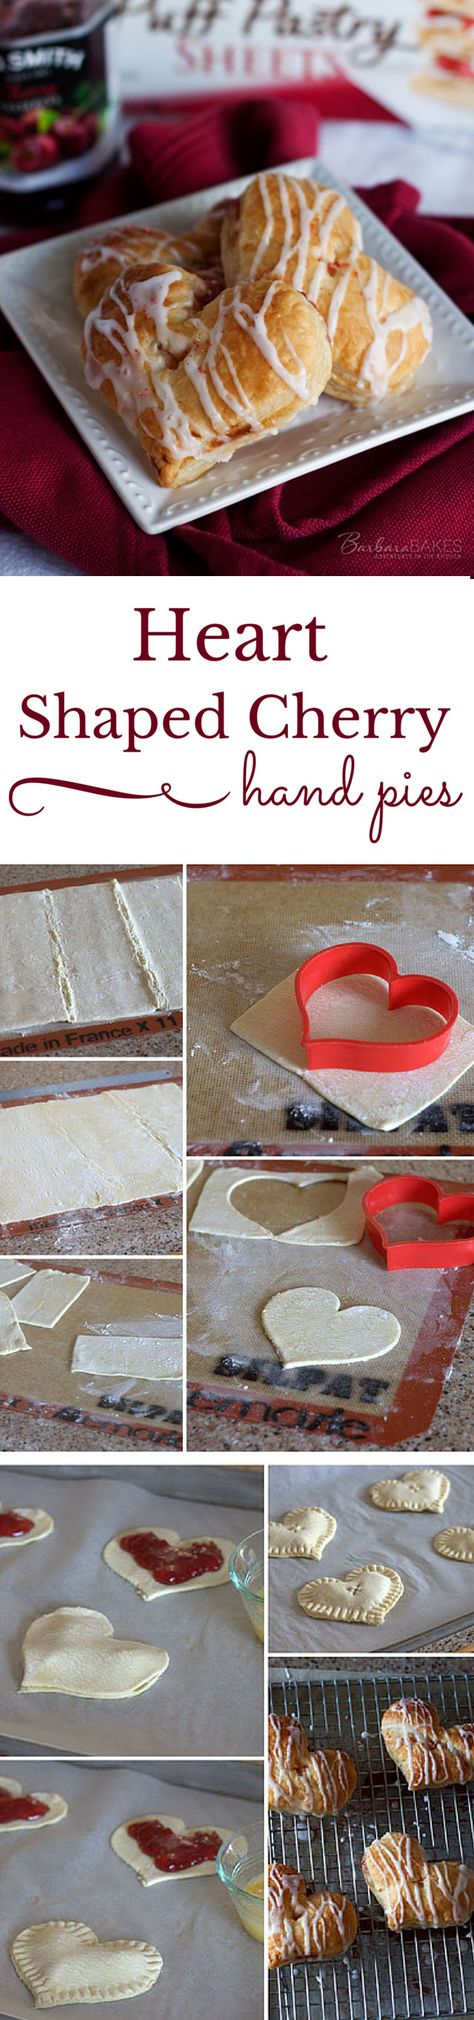 Easy to make heart shaped cherry hand pies.